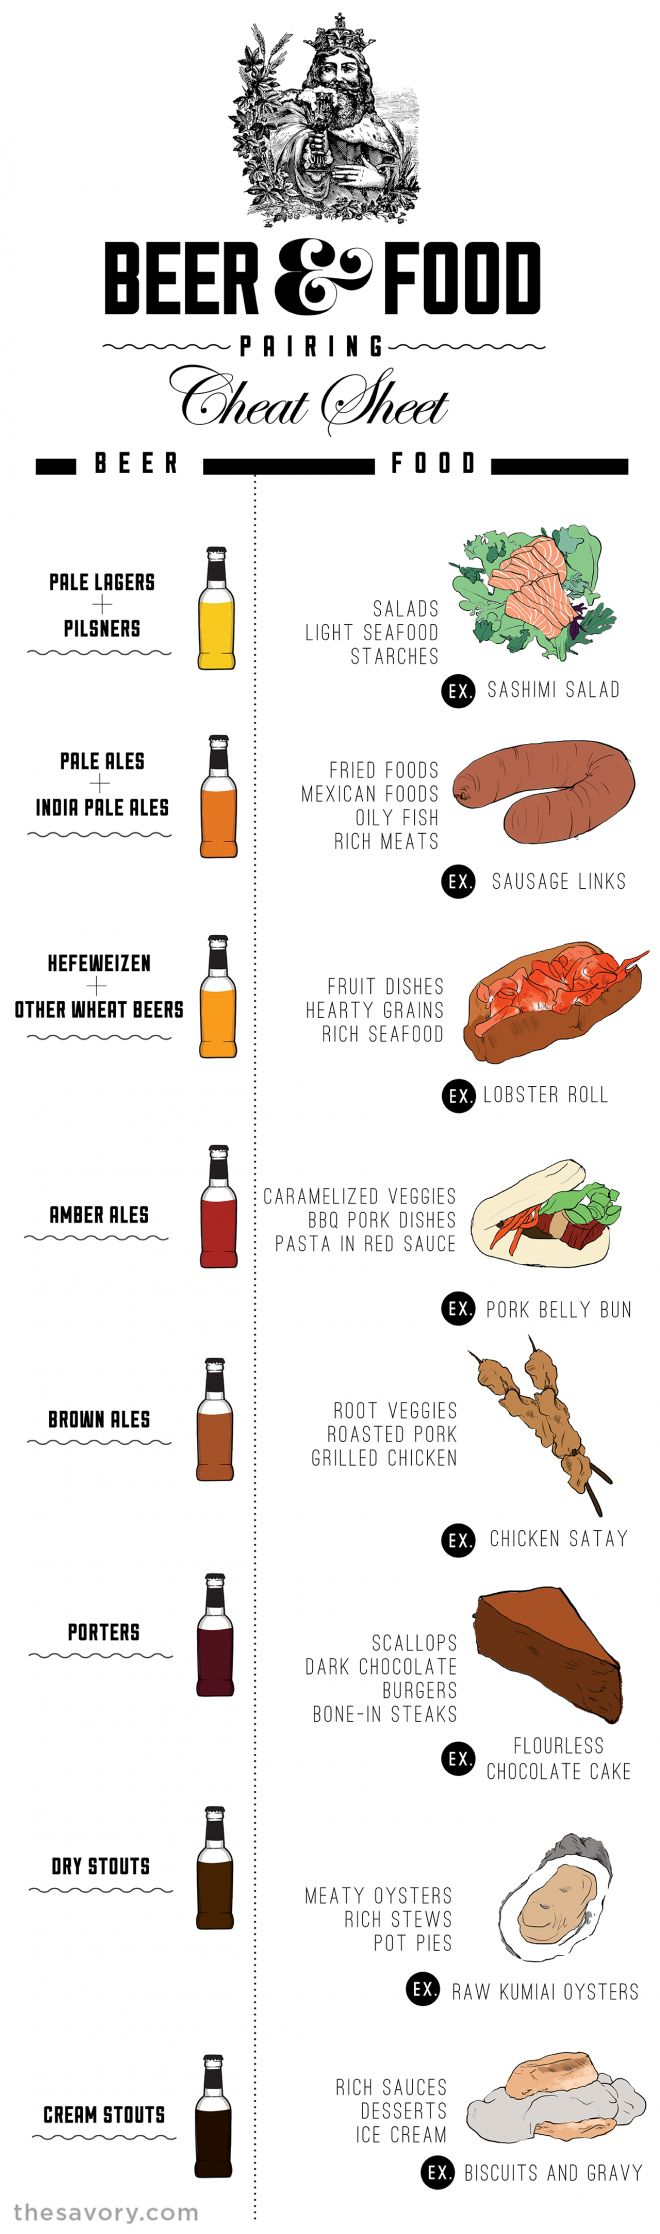 beer-and-food-pairing-cheat-sheet